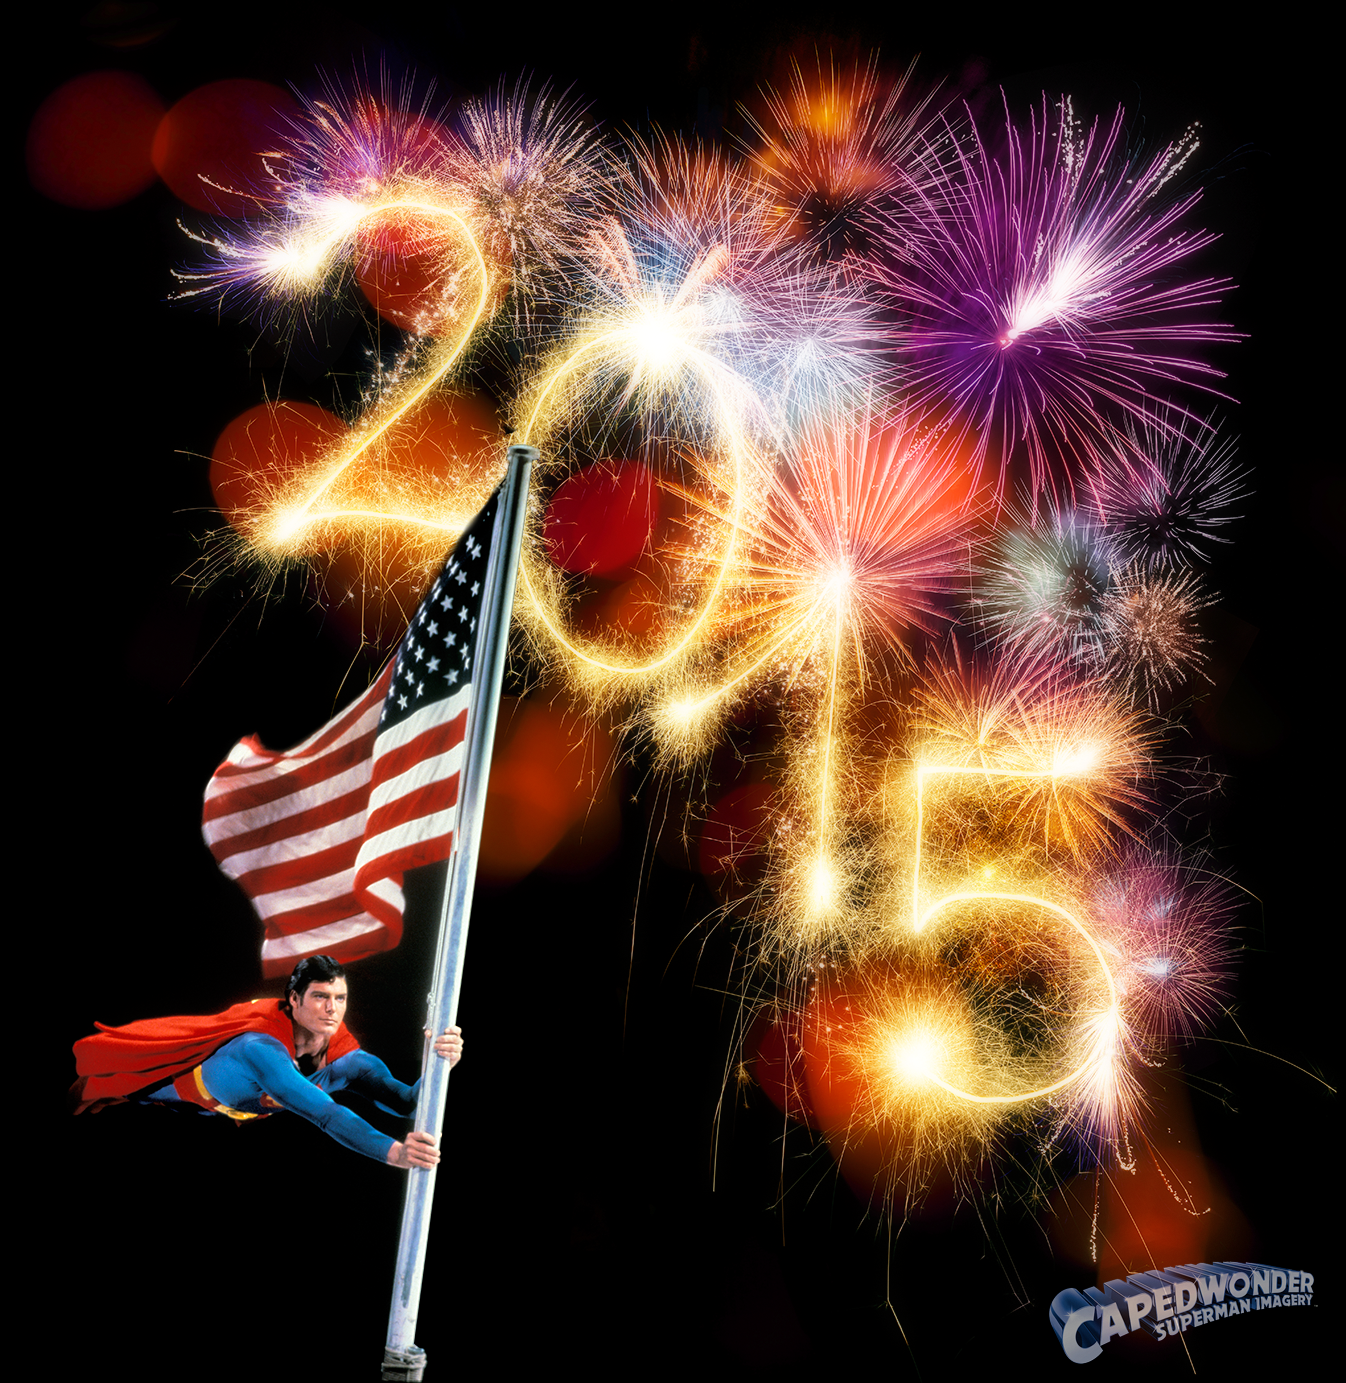 CapedWonder-Happy-New-Year-2015-fireworks